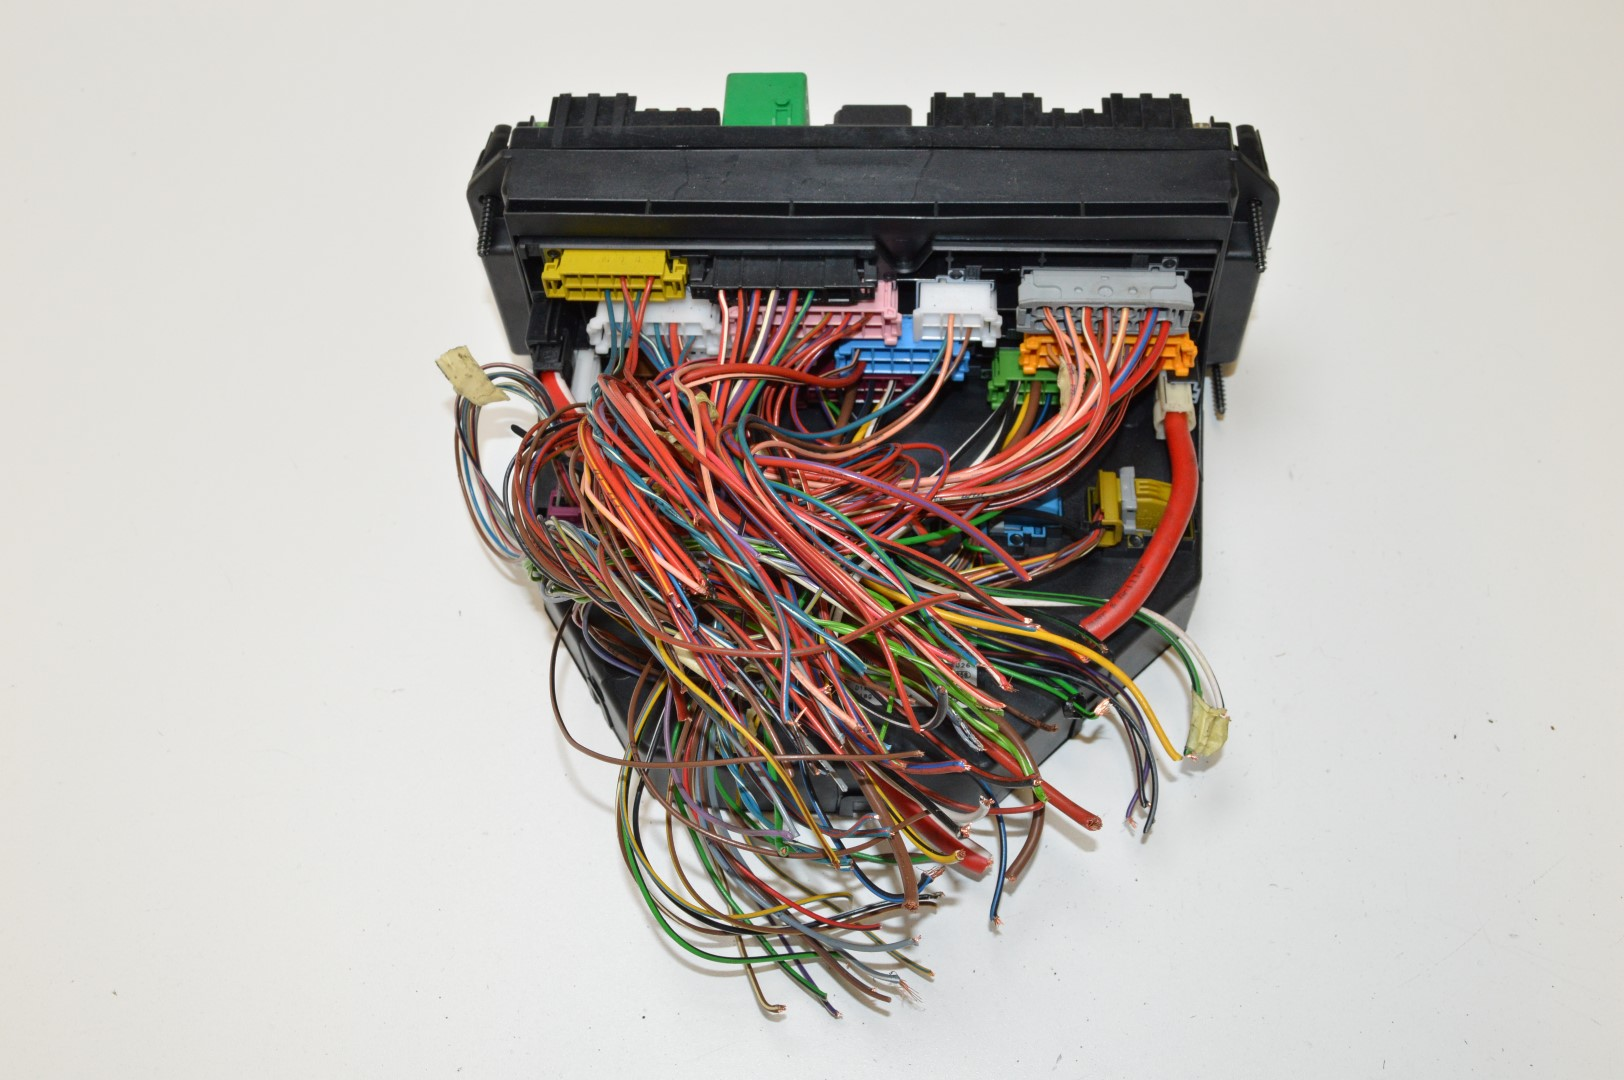 hight resolution of details about mercedes e350 cdi c207 2010 rhd fuse box sam unit module a2129000006